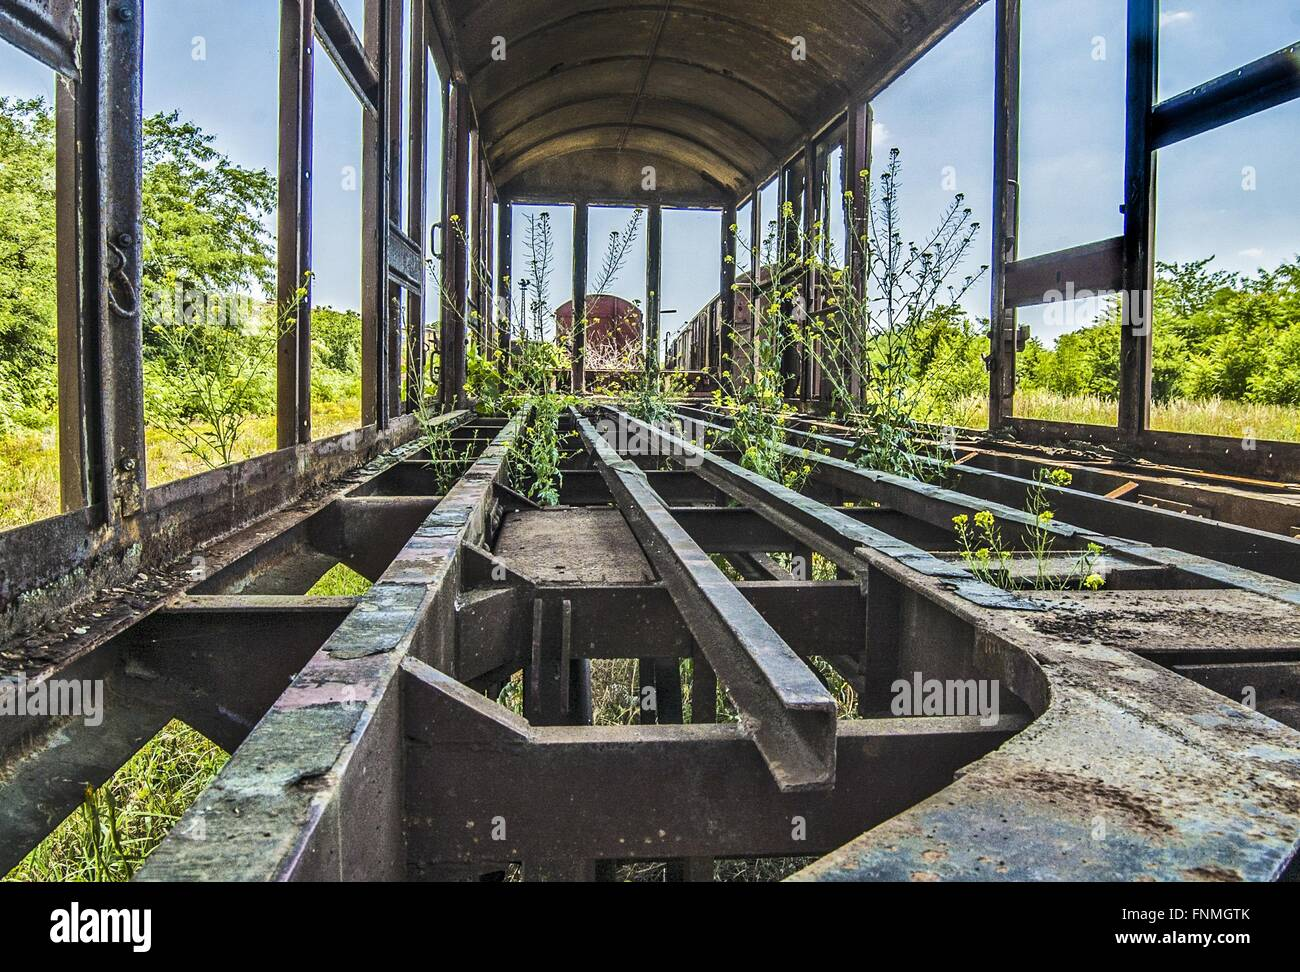 Old Railway Wagon On Siding And Waiting To Cassation Or